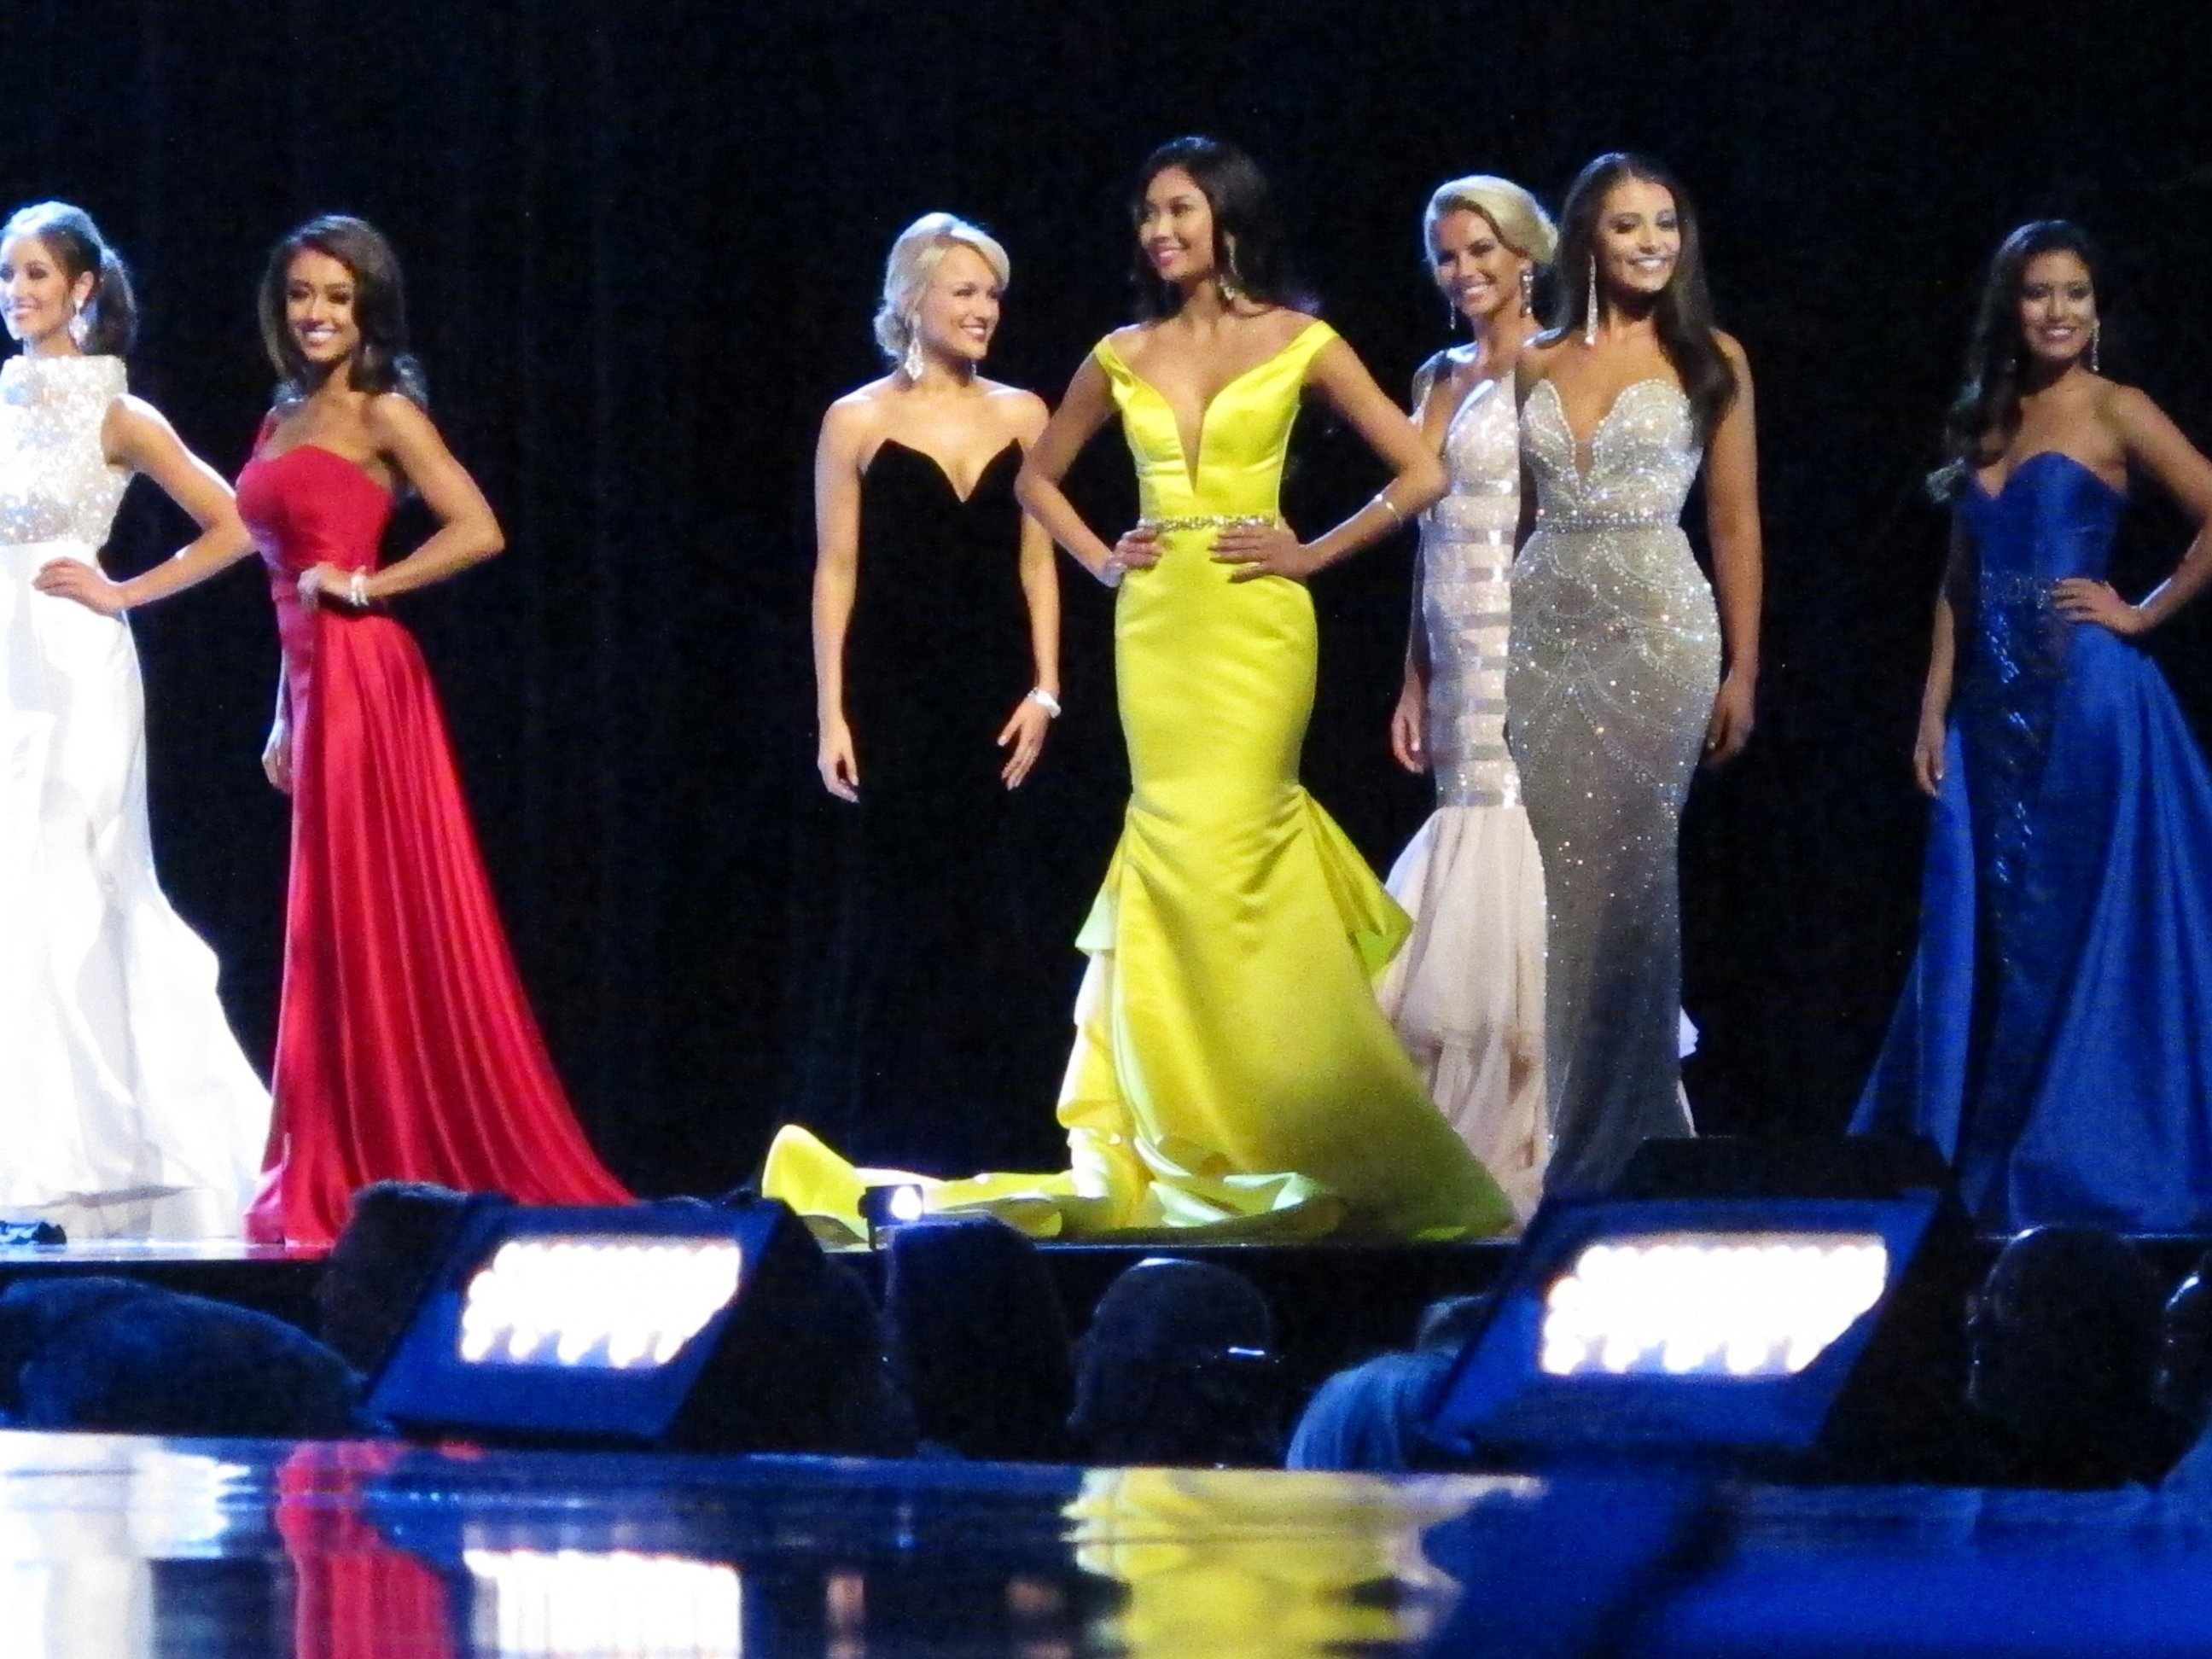 PHOTO: Contestants in the evening gown portion of the Miss America ...